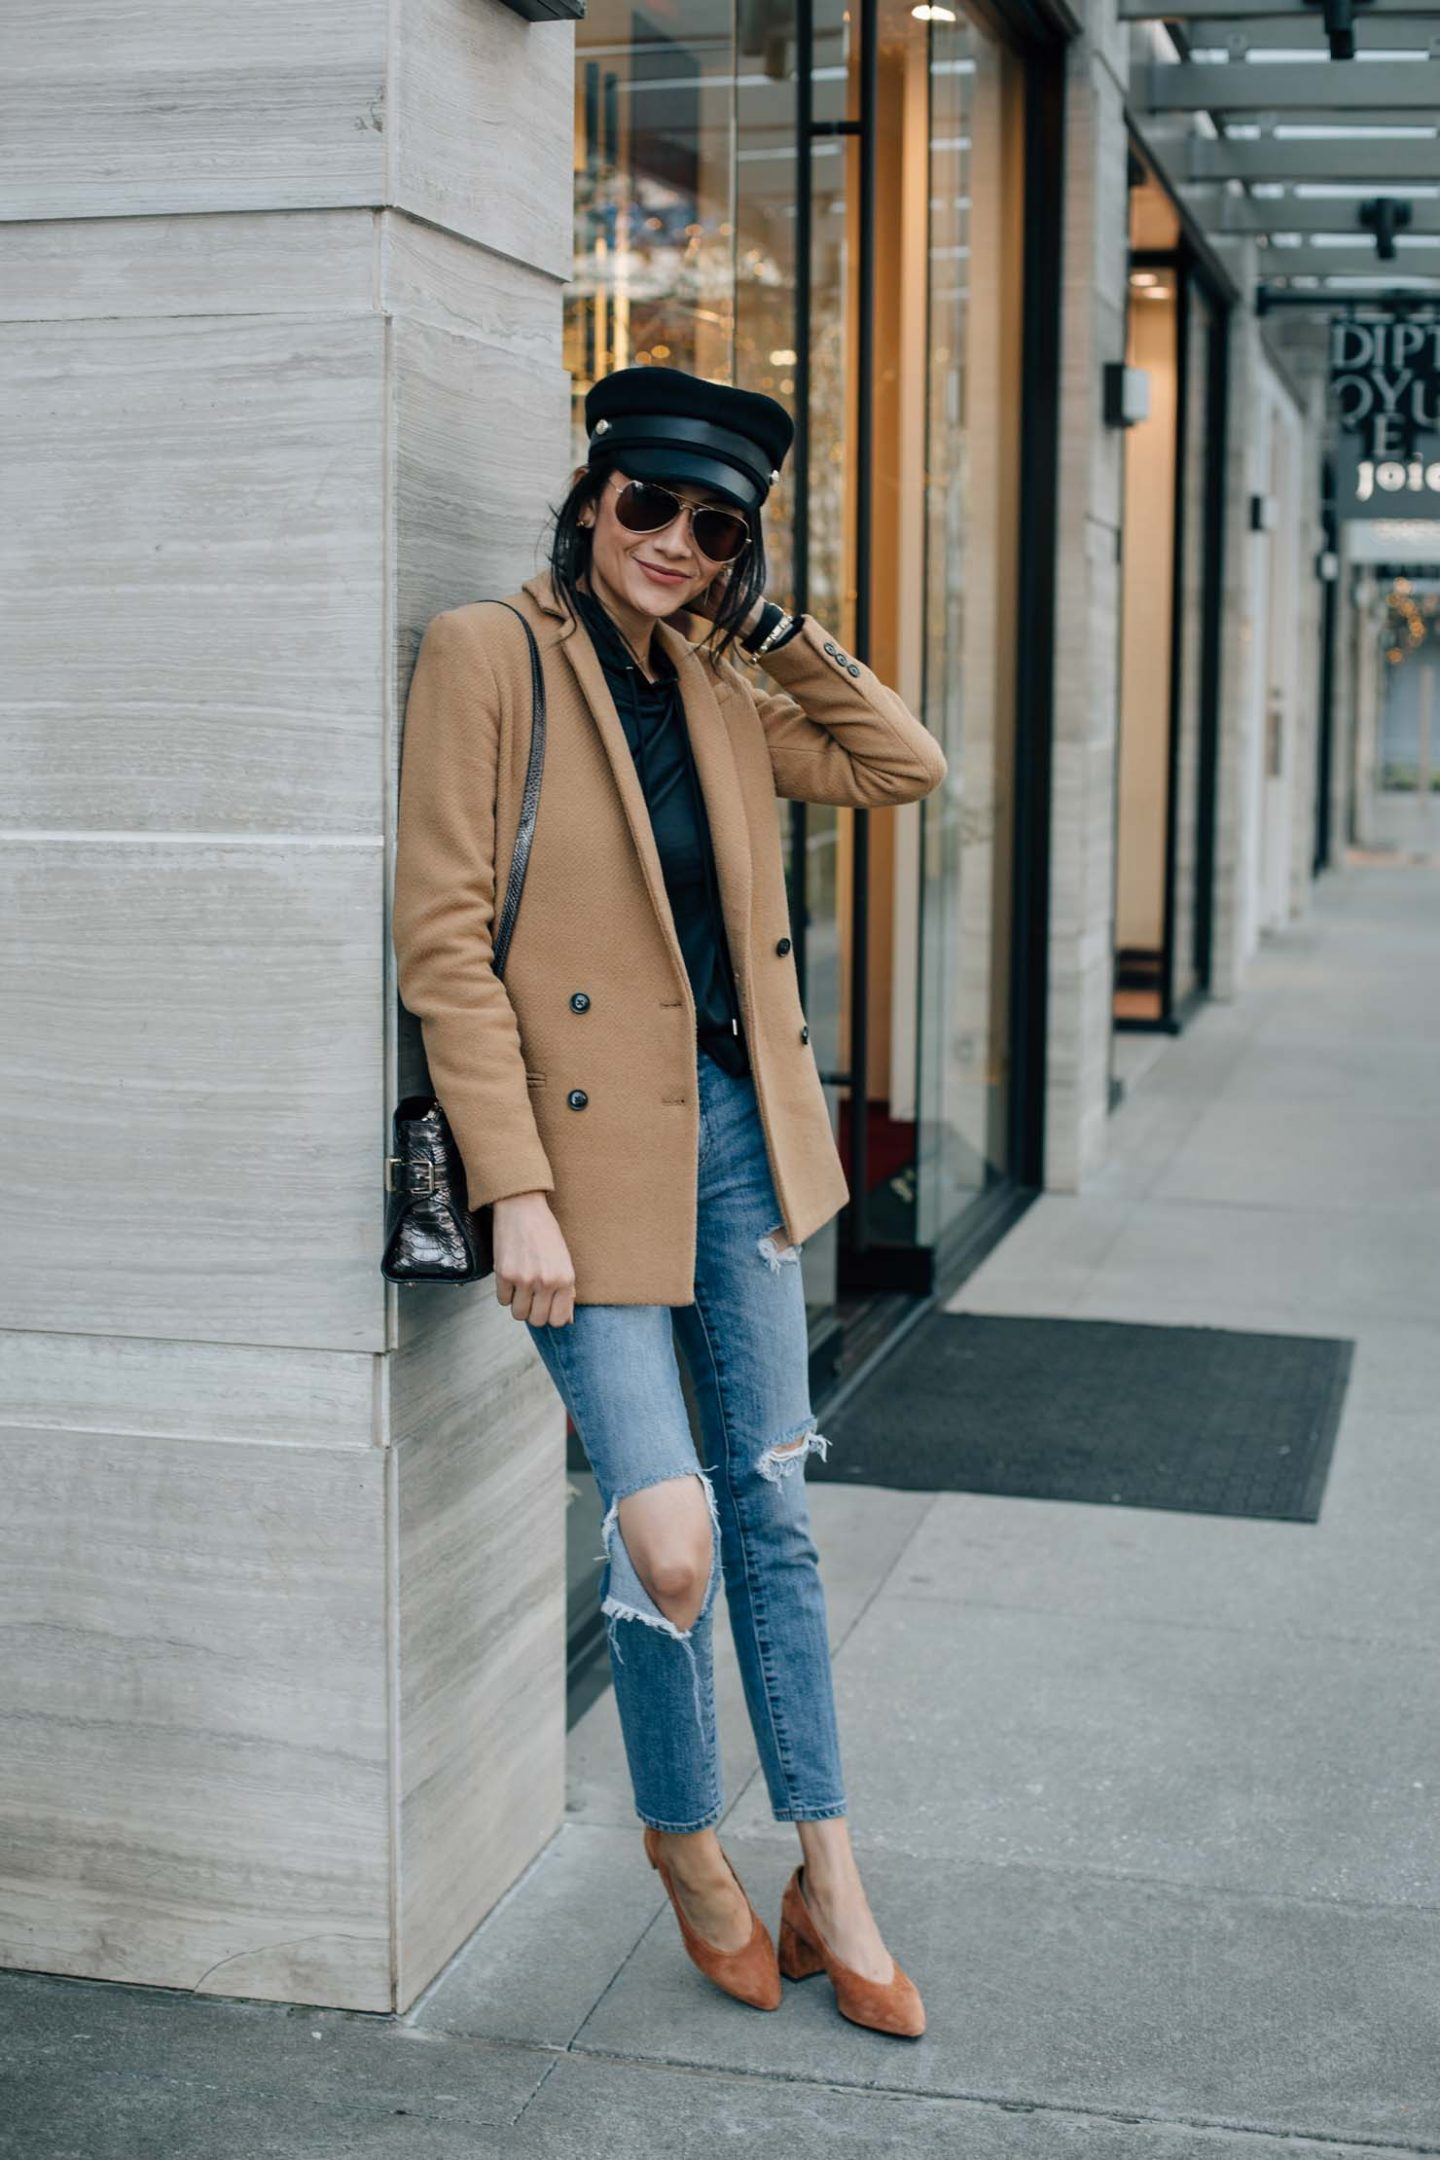 My Favorite Color Combination For Fall & Winter Outfits